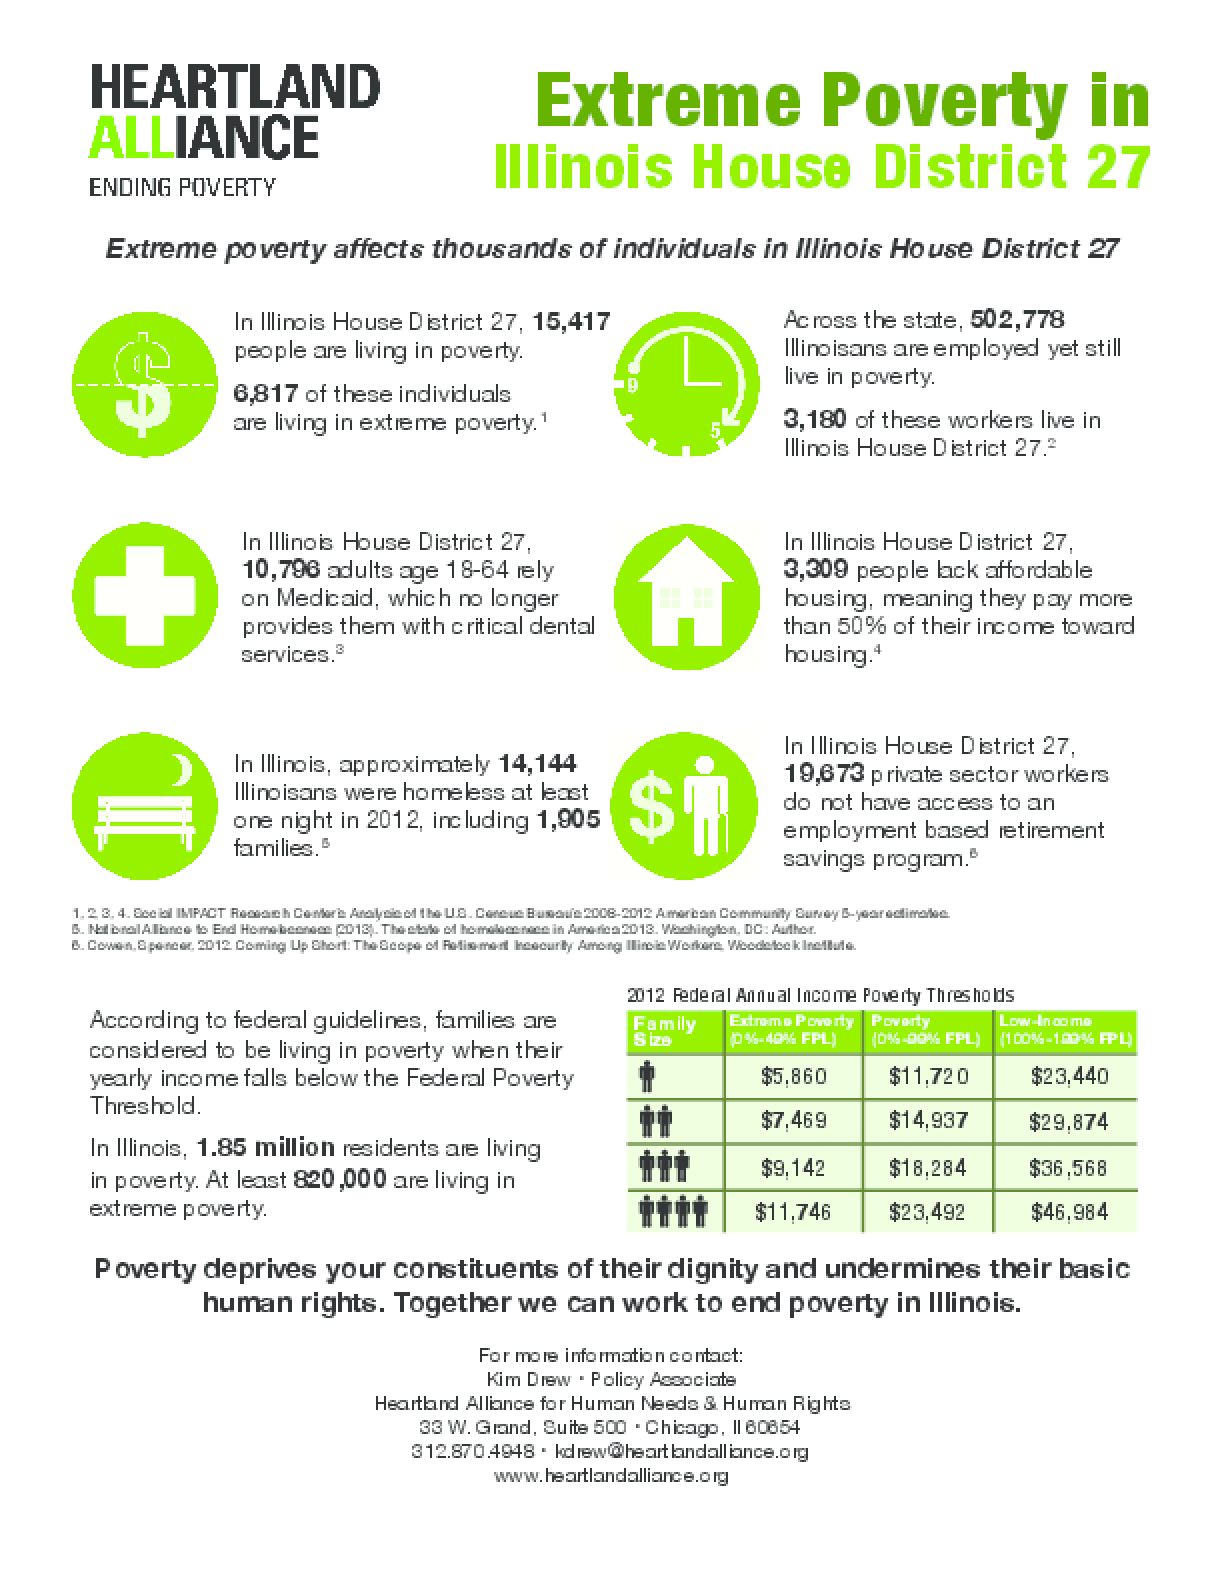 Poverty Fact Sheets for Illinois House District 27